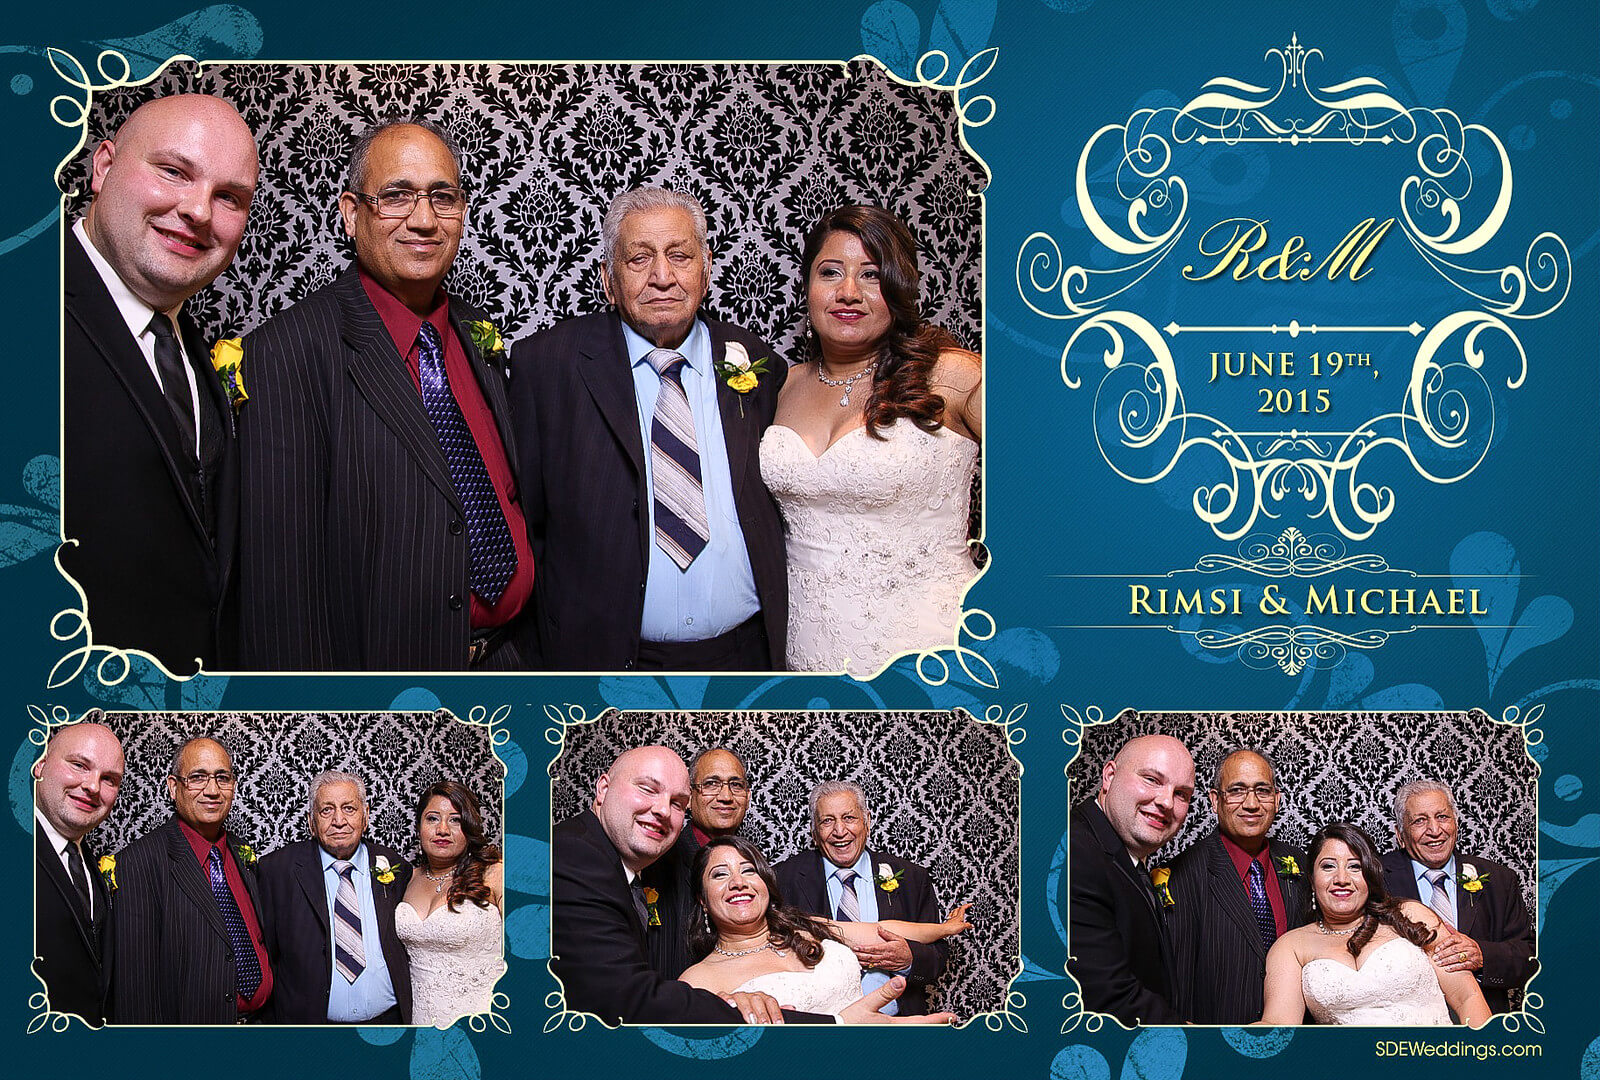 Toronto Italian Borgata Wedding Photo Booth Rental 3